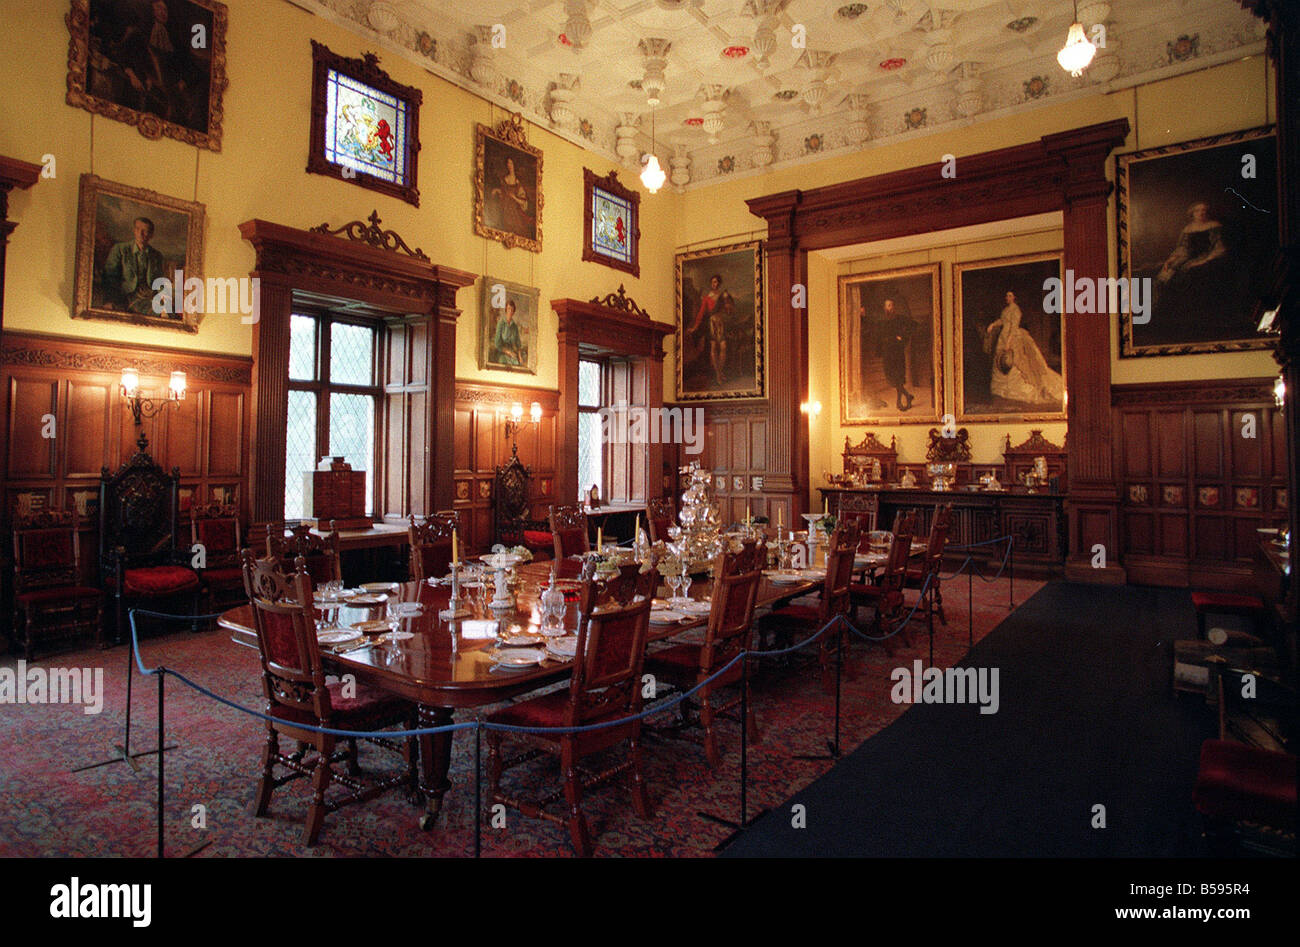 Castle Dining Room The Dining Room In Glamis Castle Scotland Where The Queen